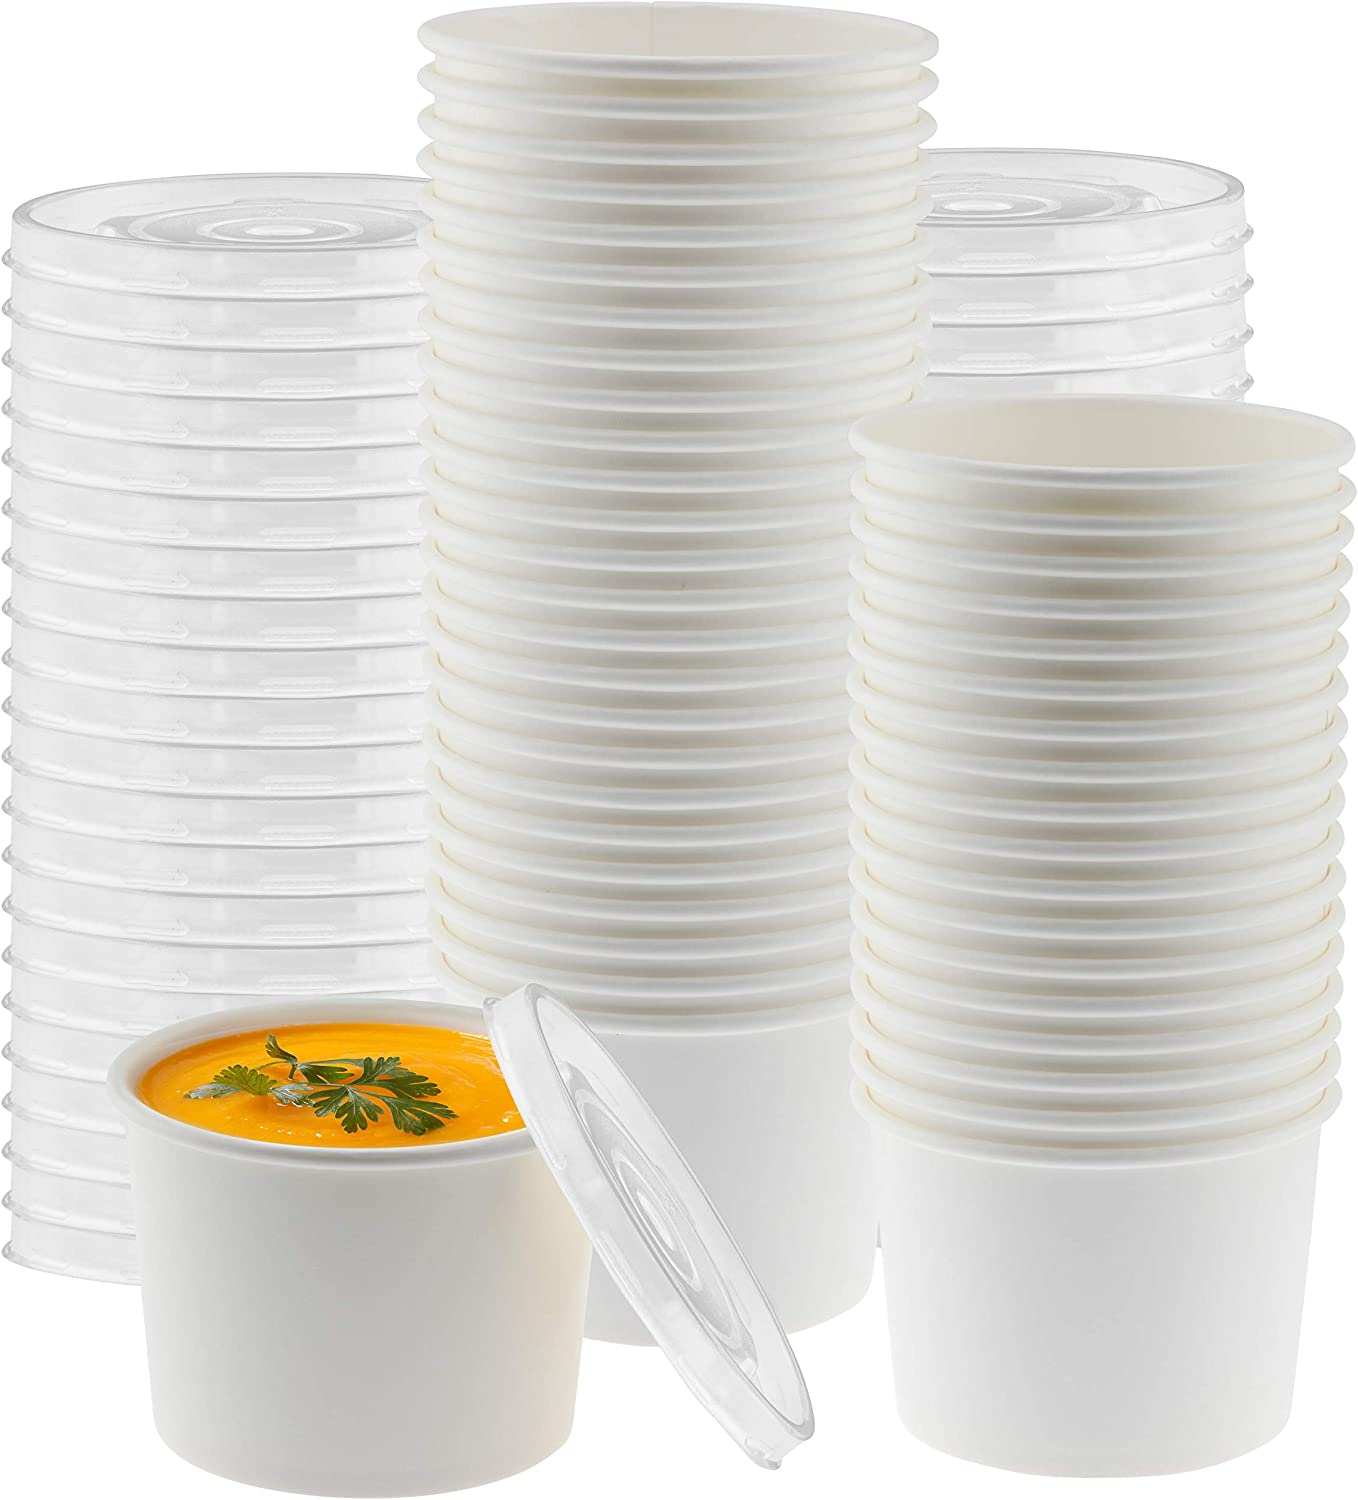 NYHI Paper Soup Storage Containers With Lids | 16 Ounce Insulated Take Out Disposable Food Storage Container Cups For Hot & Cold Foods | Eco Friendly To Go Soup Bowls With Plastic Lid | 50 Pack